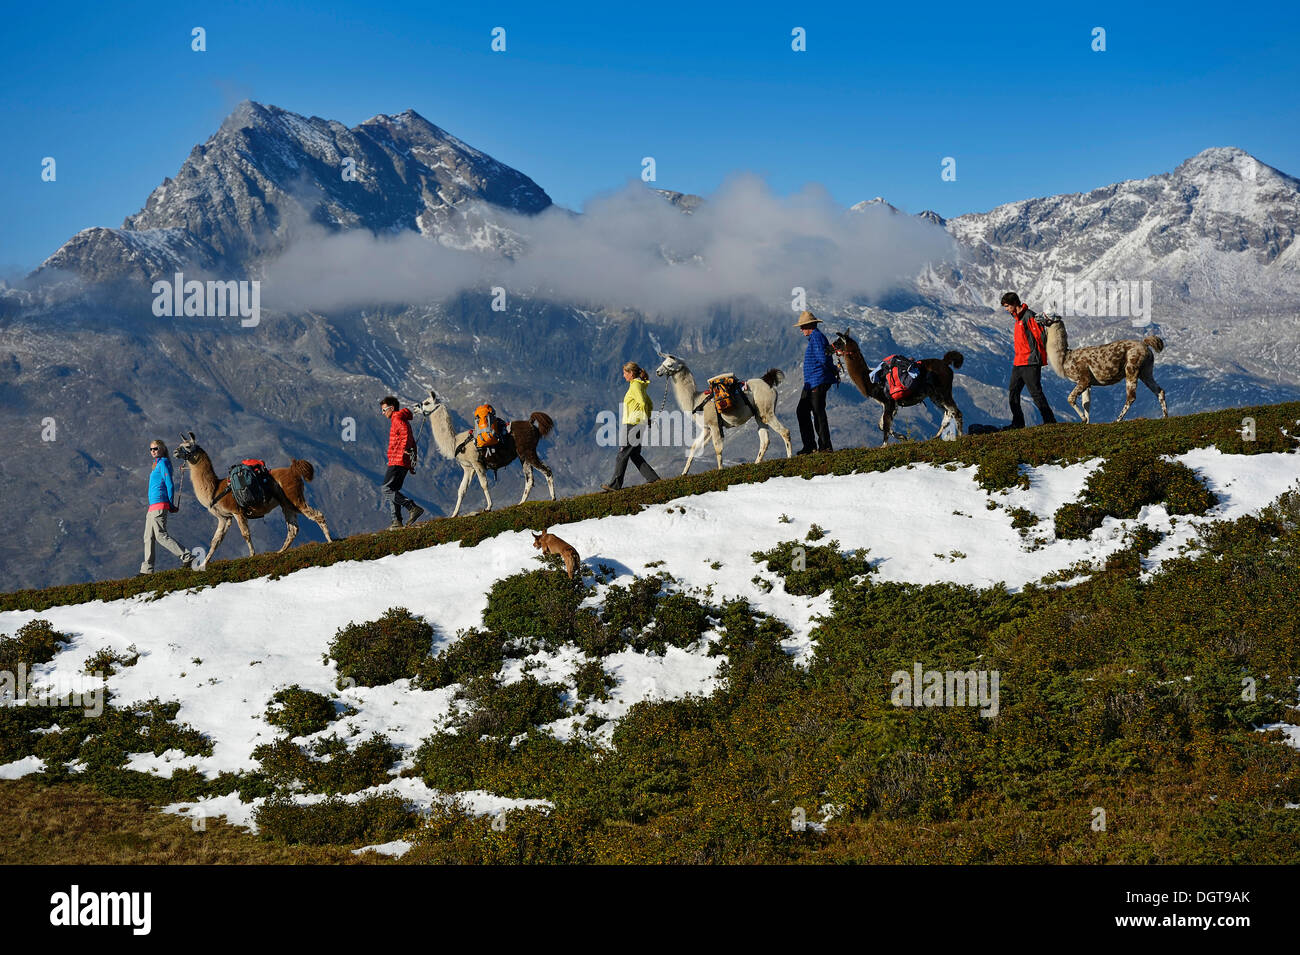 Llama tour to the summit of Boeses Weibele Mountain in the Defregger Group, Carnic Dolomites, Upper Lienz, Puster Valley - Stock Image